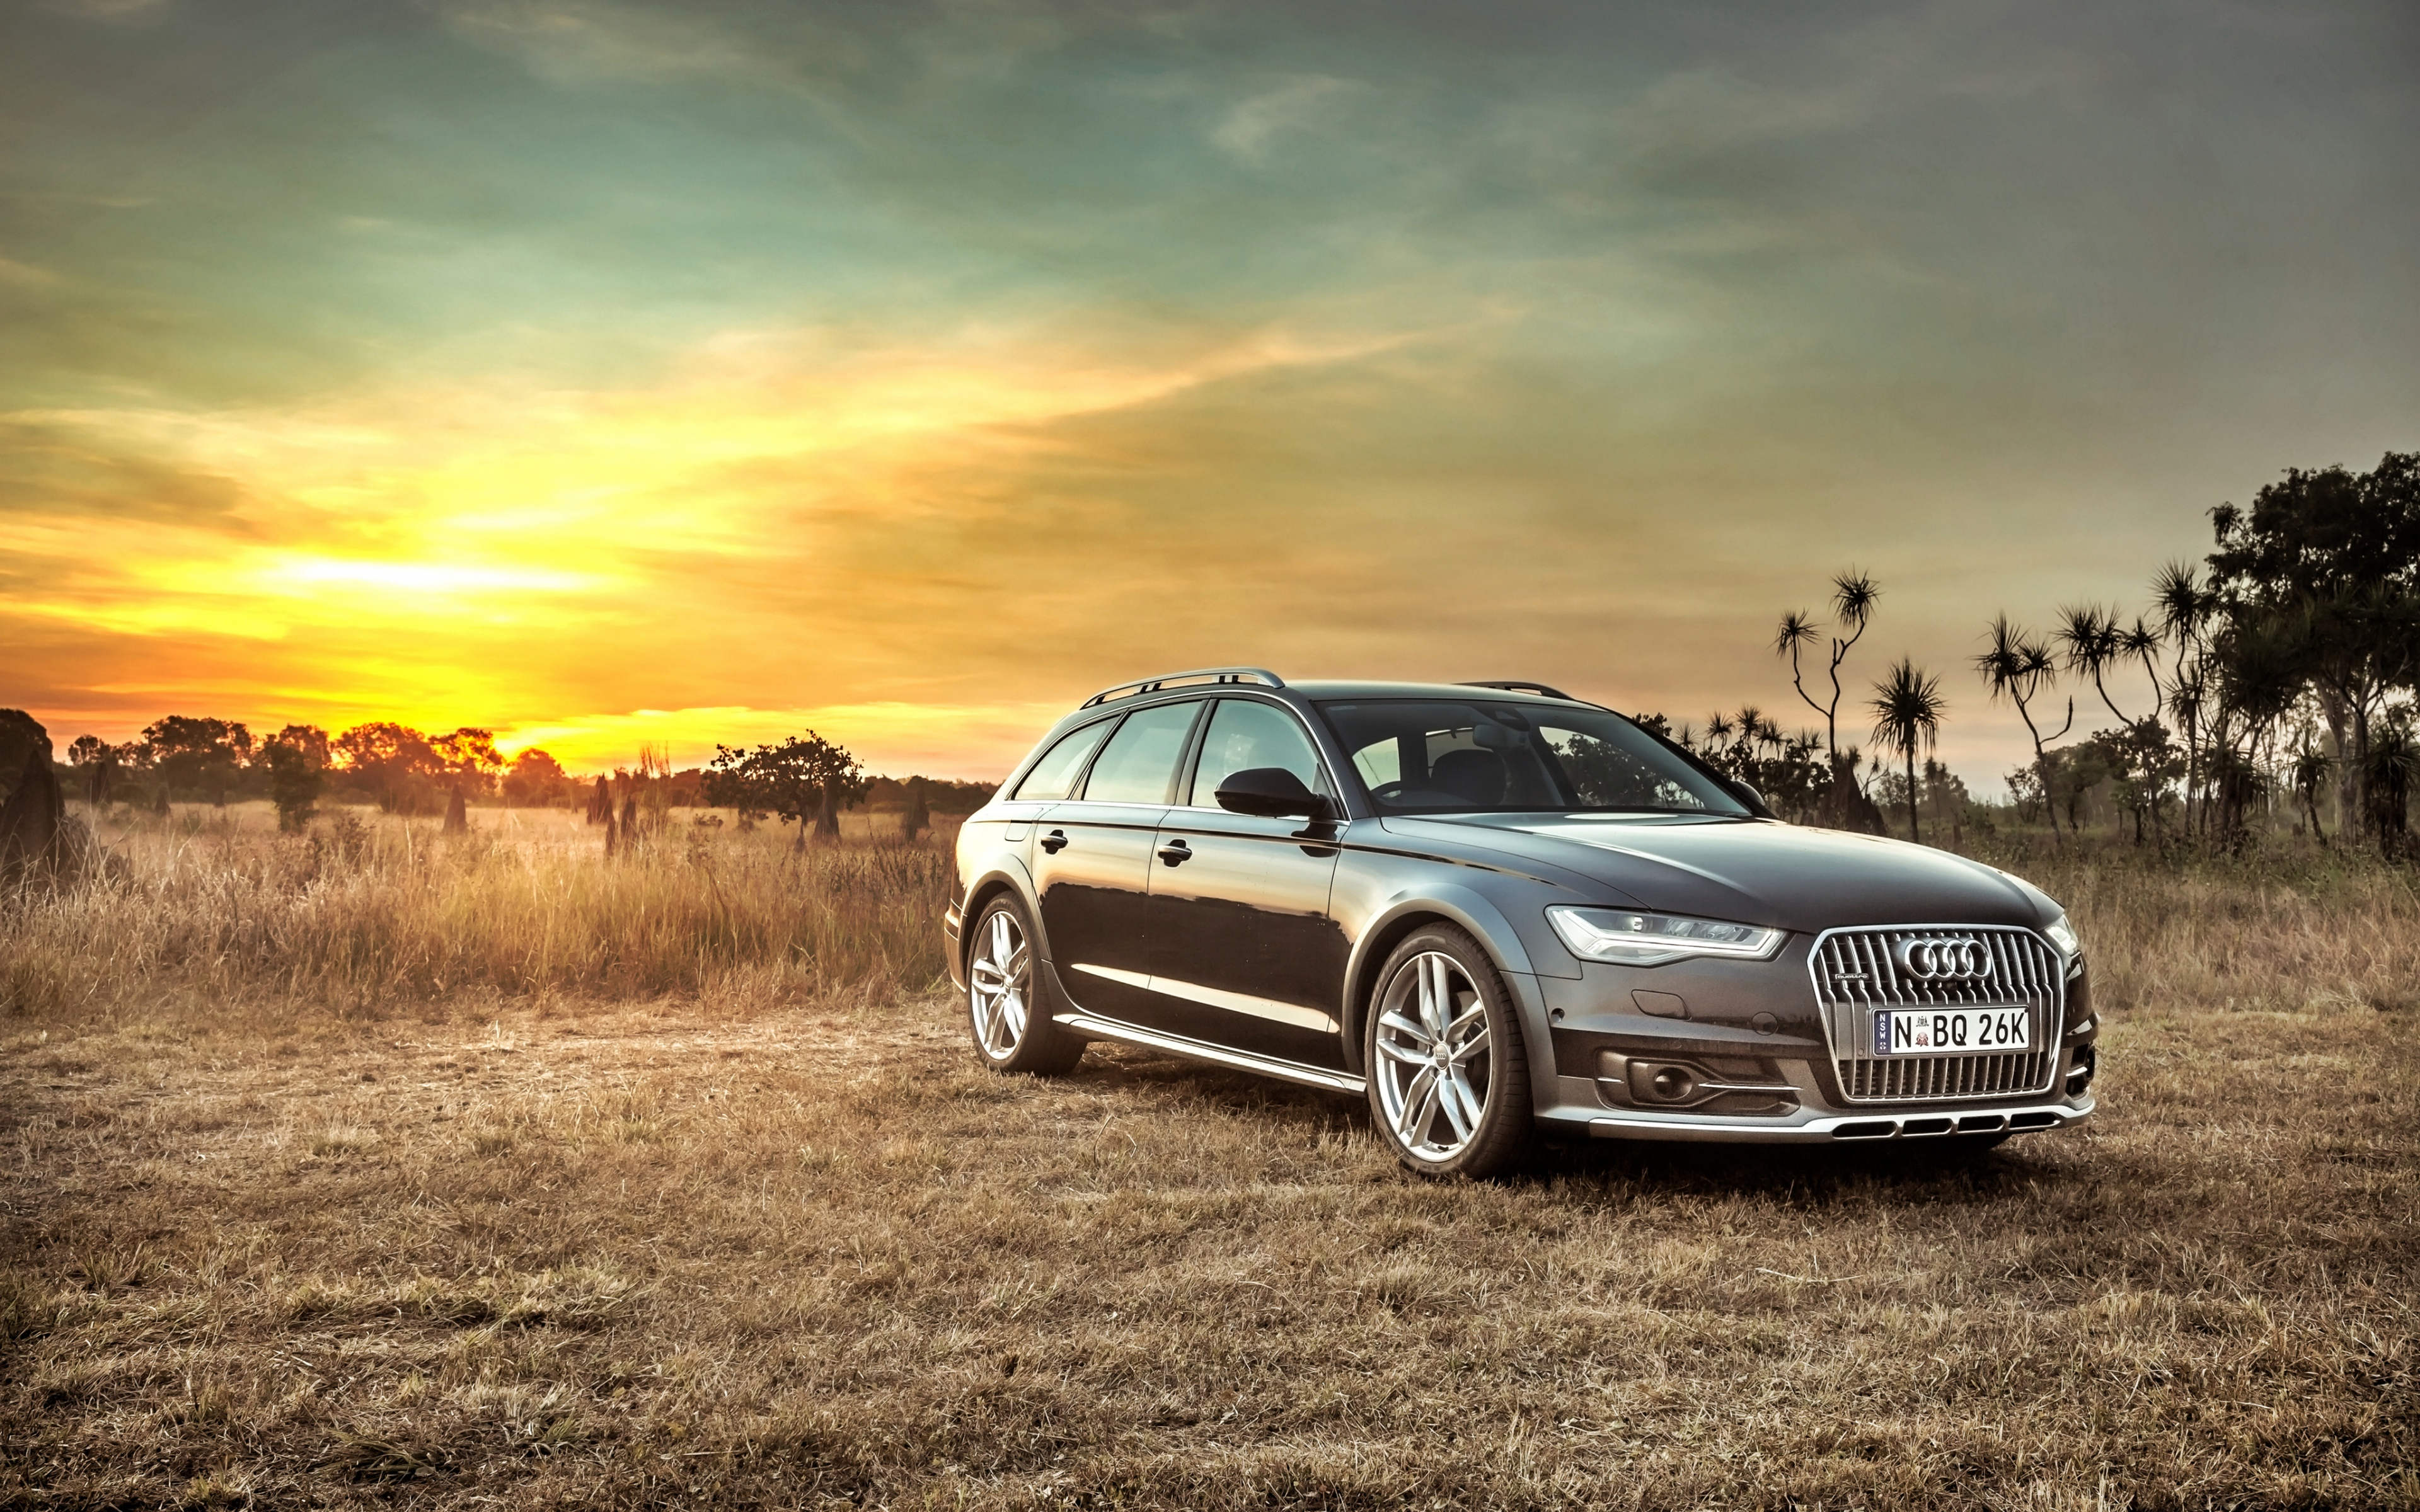 HD Background Audi A6 Allroad Side View Sunset HDR Car 3840x2400